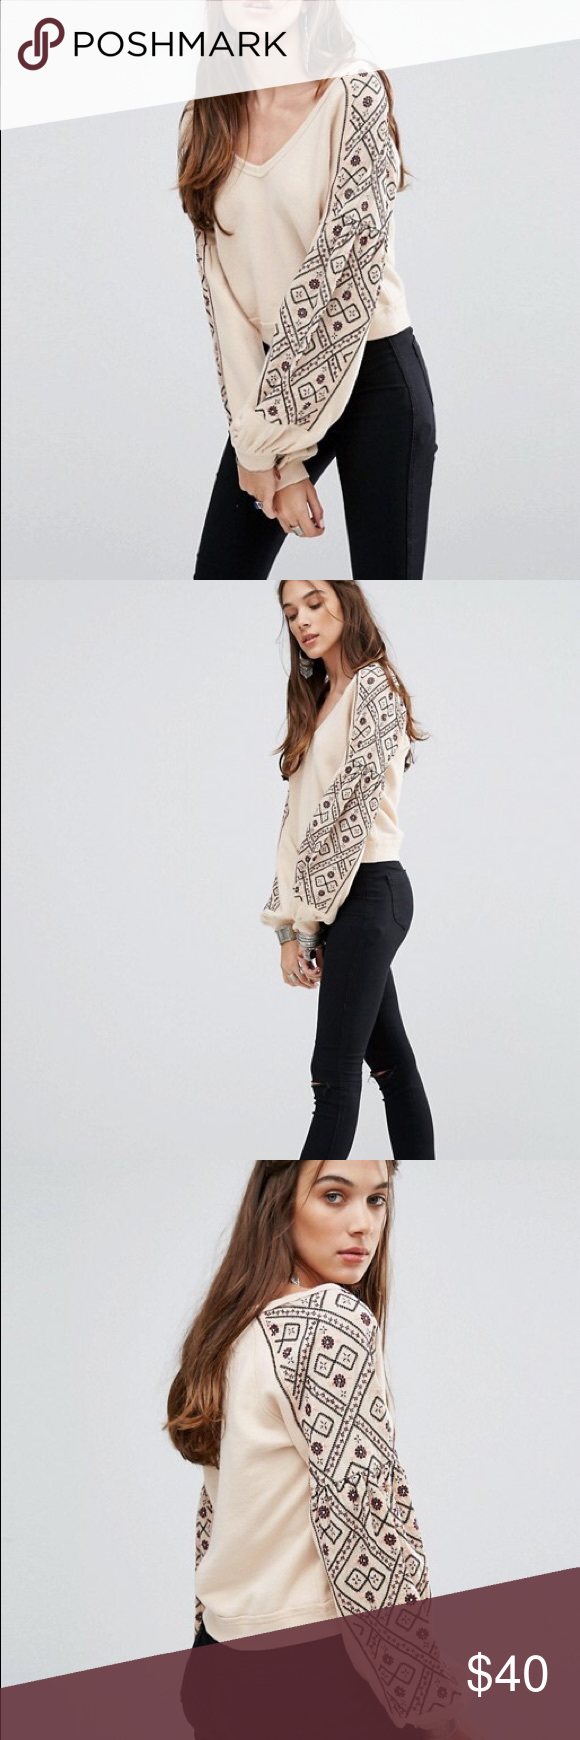 Free People señorita pullover sweater Free people senorita